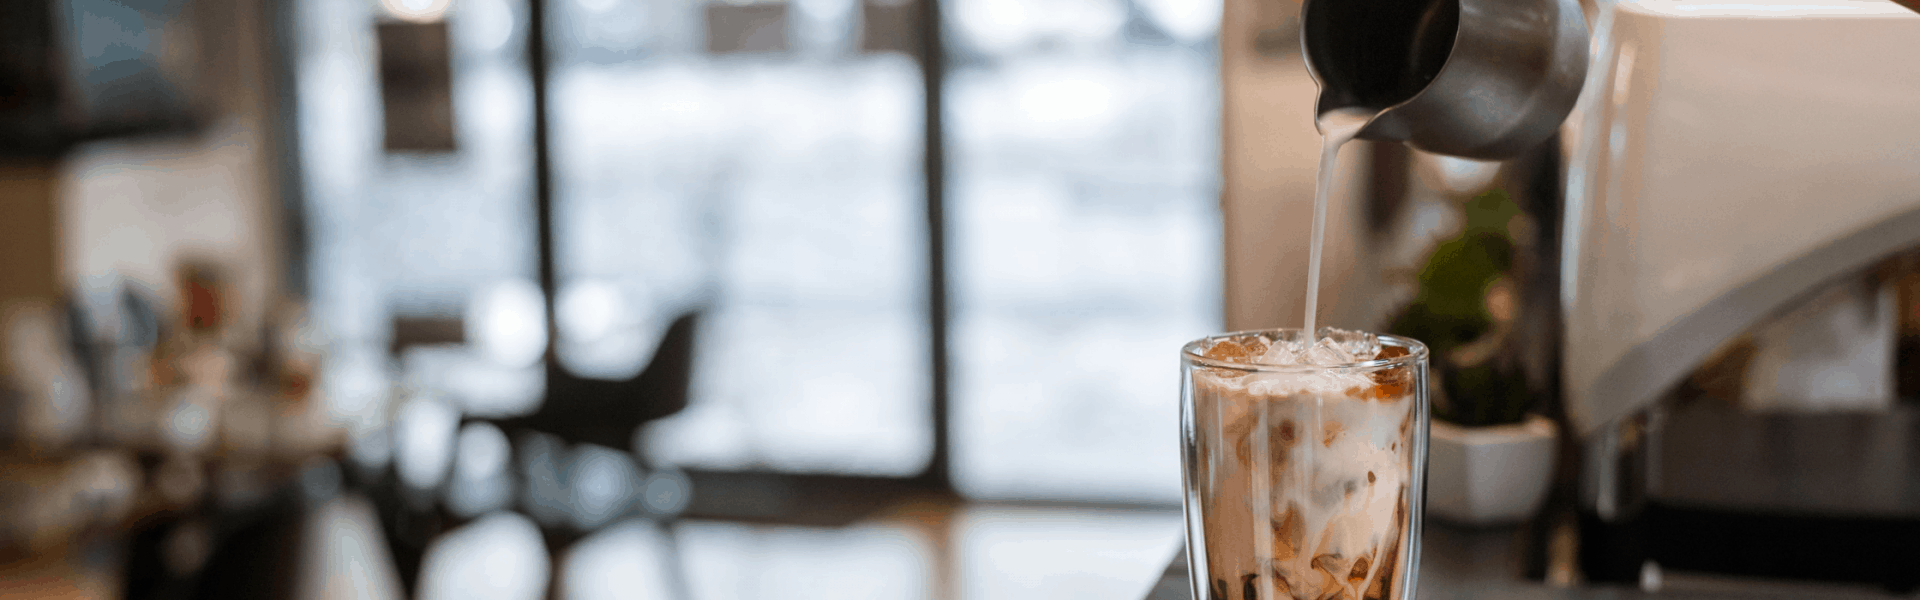 Tips for Making Great Iced Coffee at Home